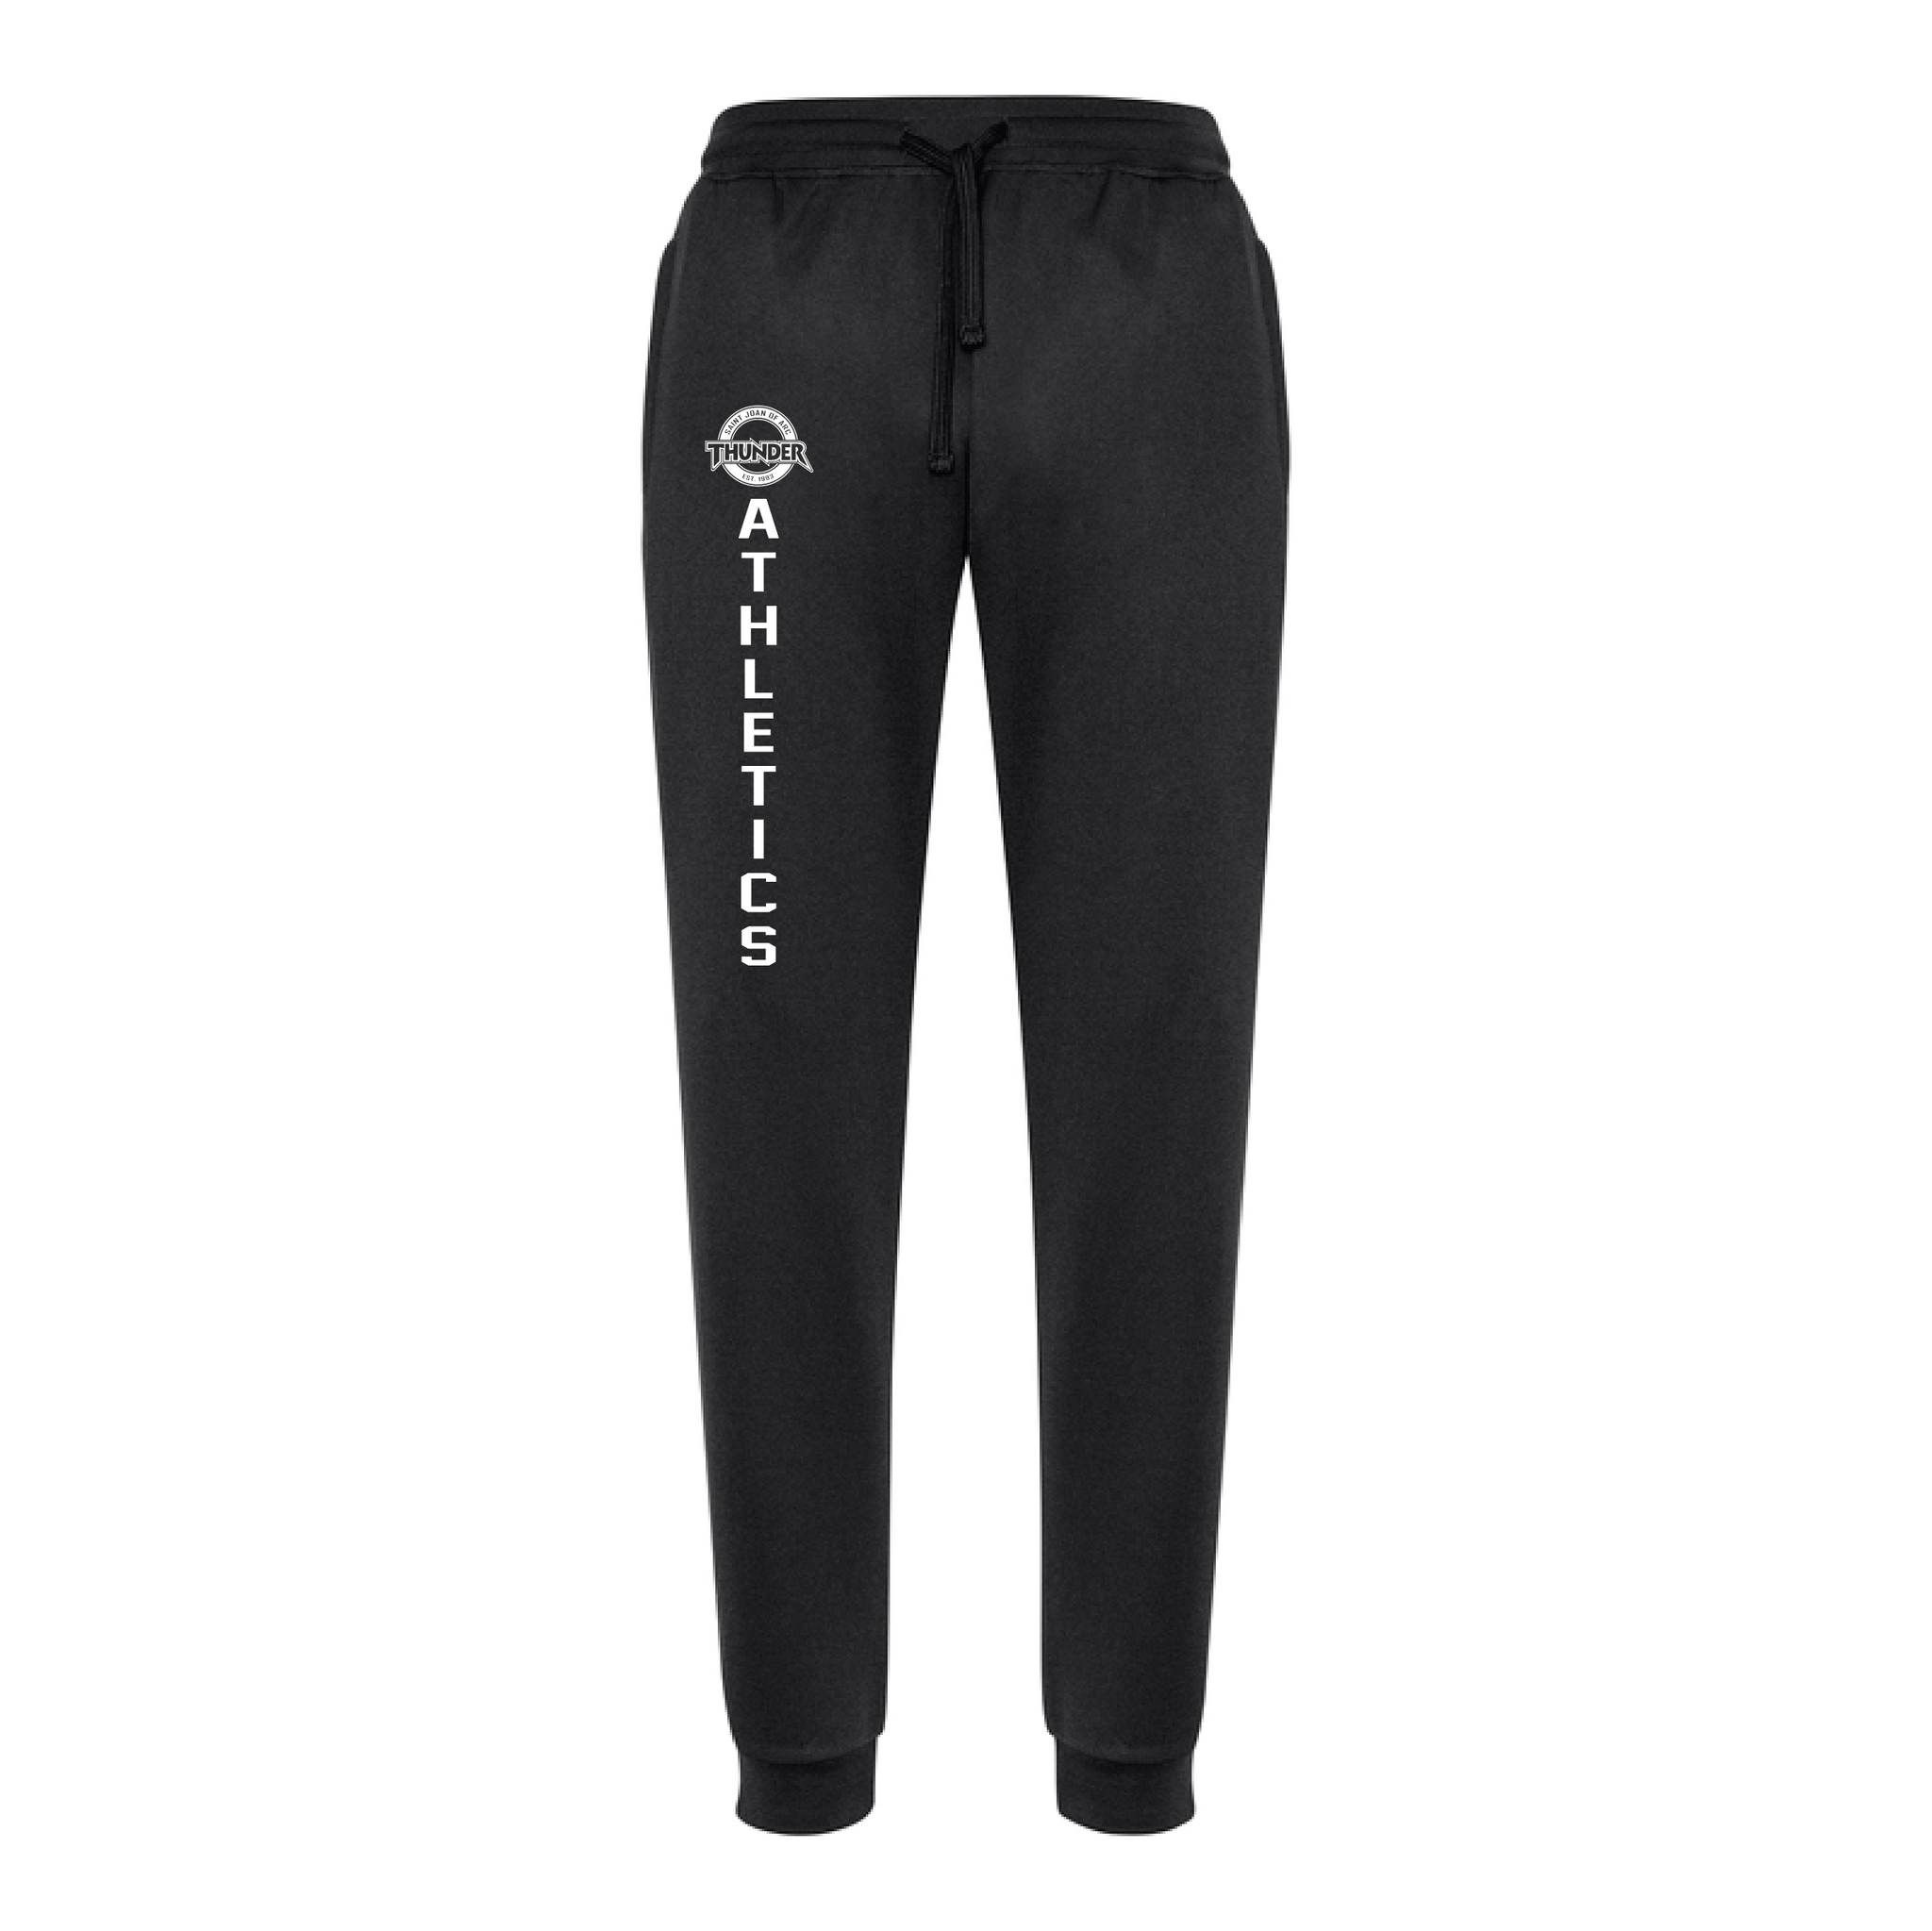 Men's Performance Joggers